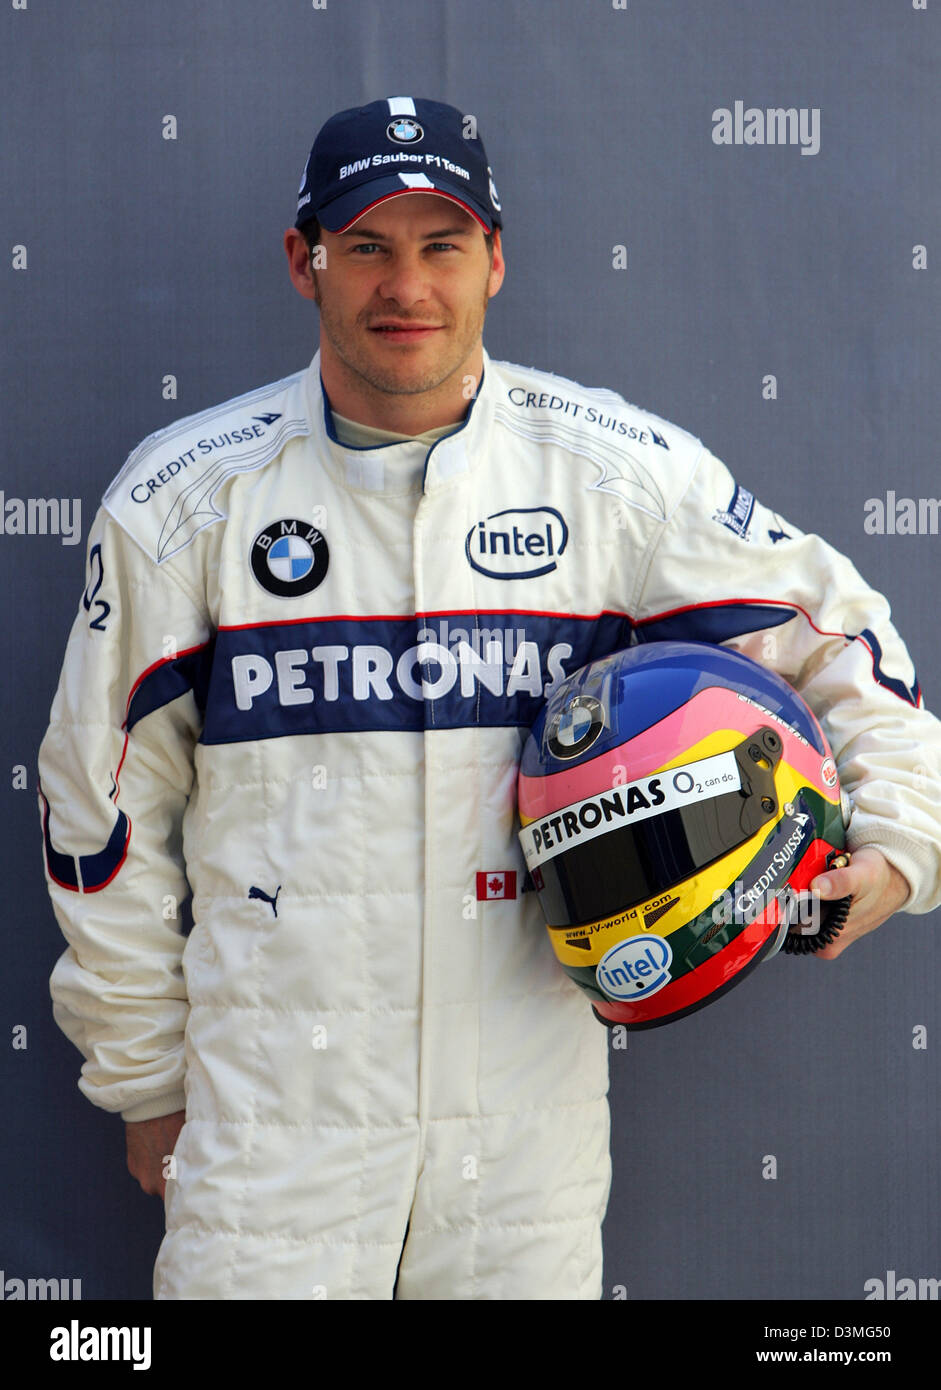 Formula one drivers from canada wikipedia.